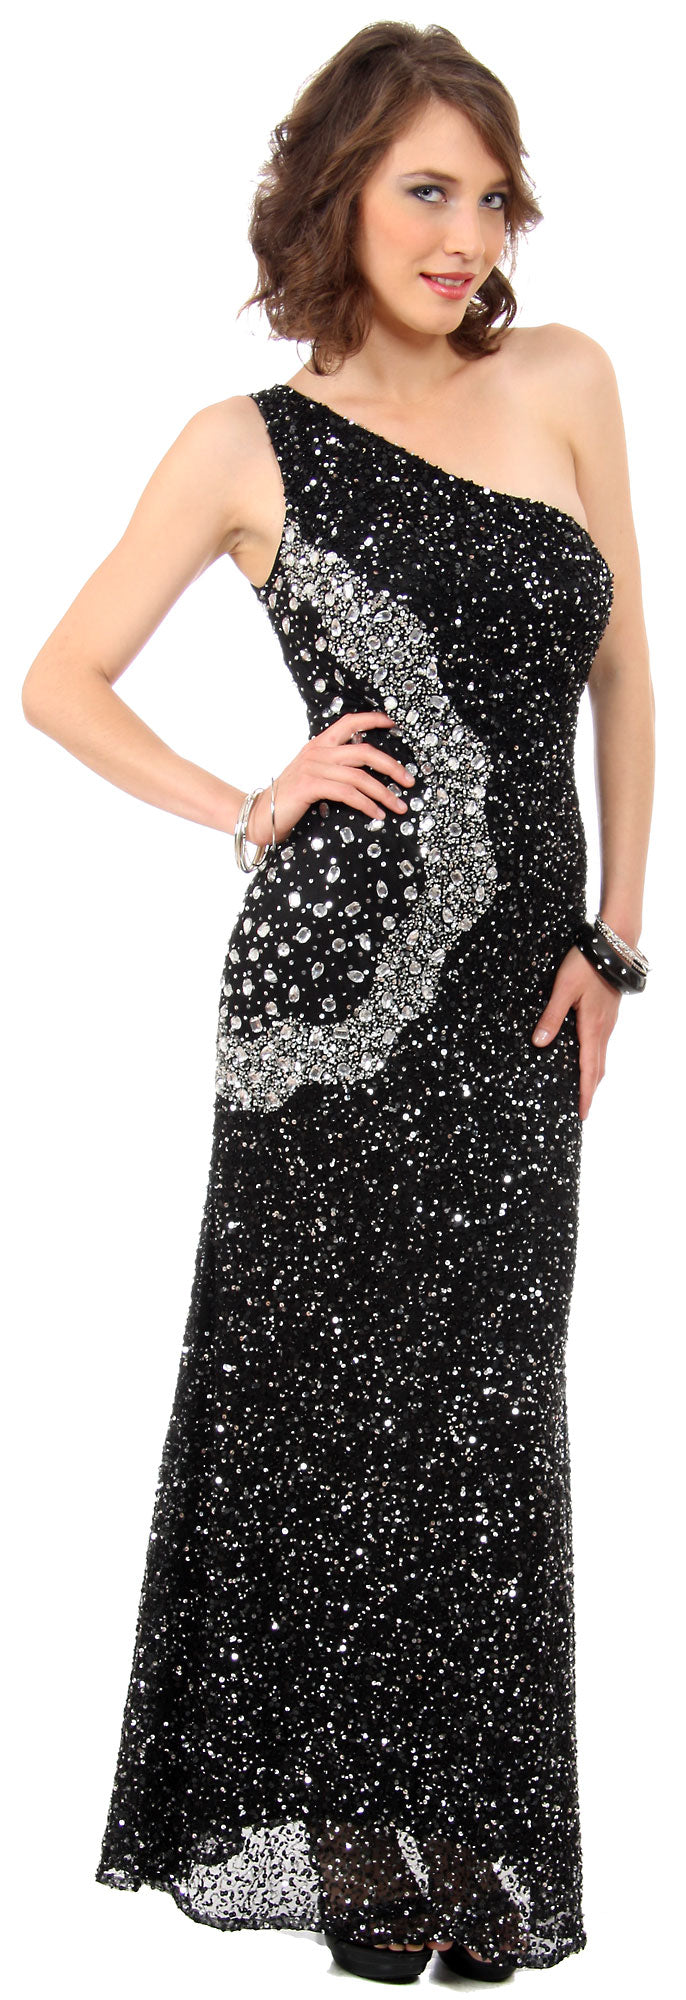 Image of Long Sequined Formal Prom Dress With Rhinestones Waist in Black/Silver